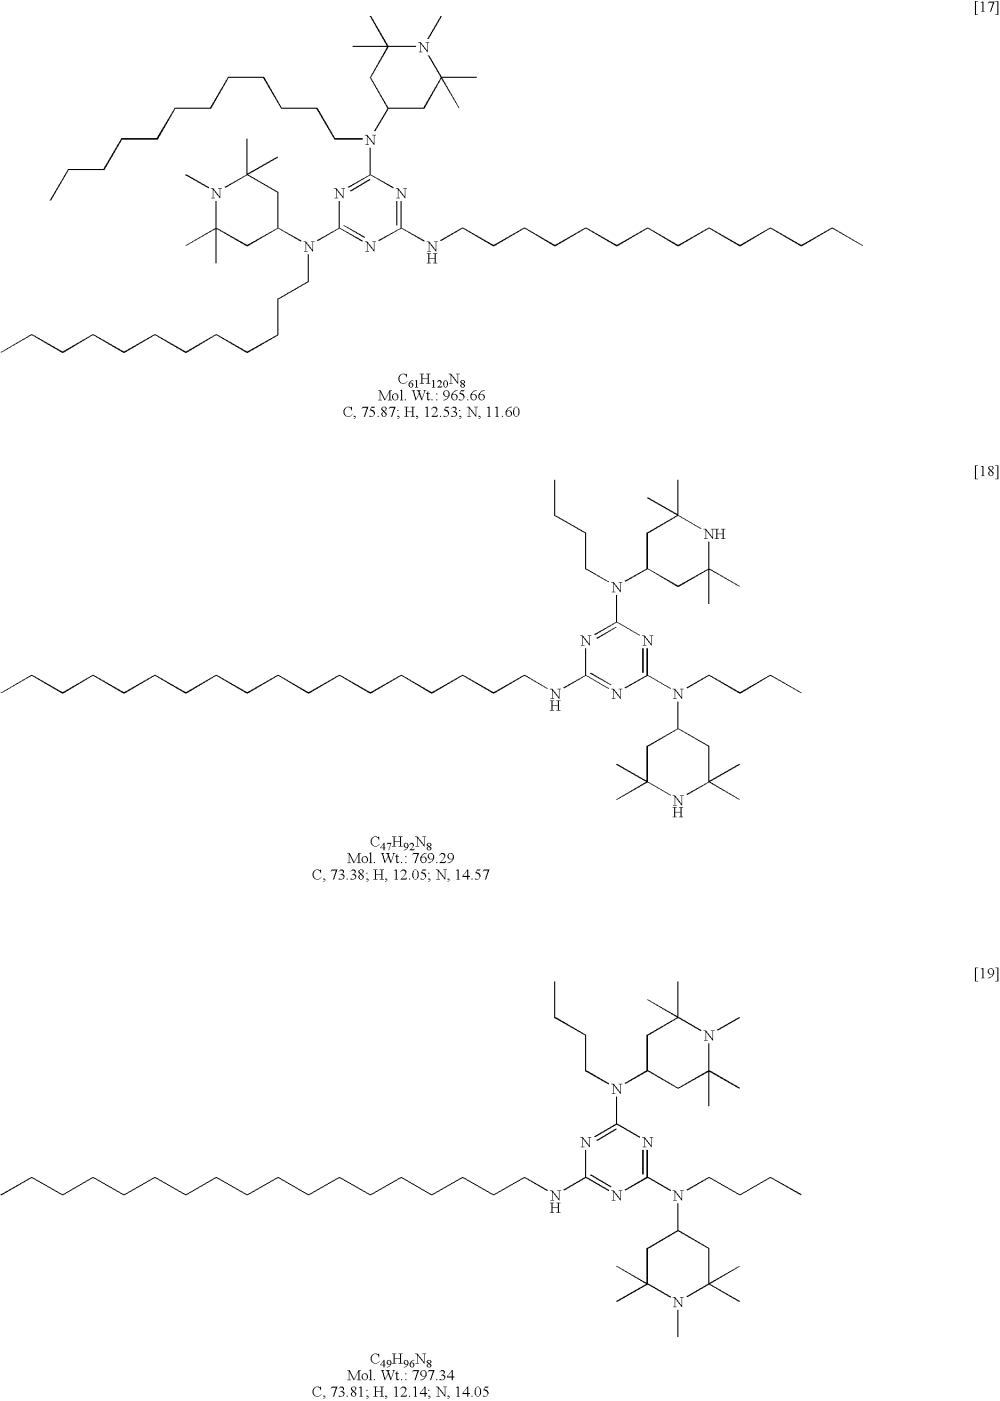 medium resolution of figure us20100074083a1 20100325 c00030